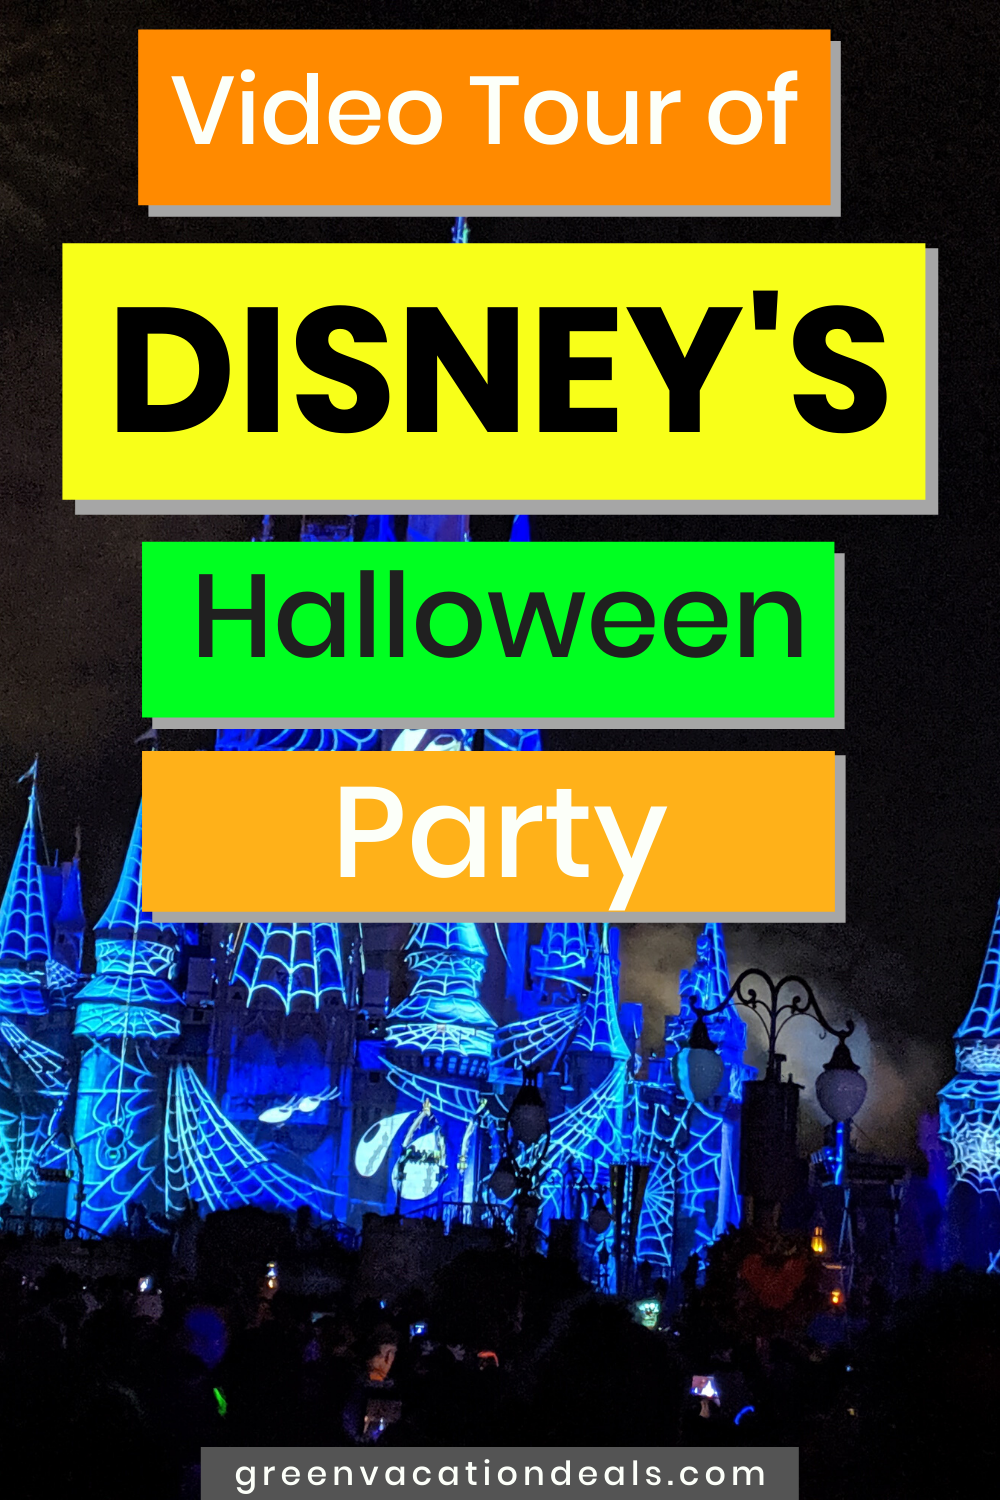 A Video Tour Of Disney World S Halloween Party Green Vacation Deals In 2020 Disney World Halloween Halloween Party Disney Halloween Parties